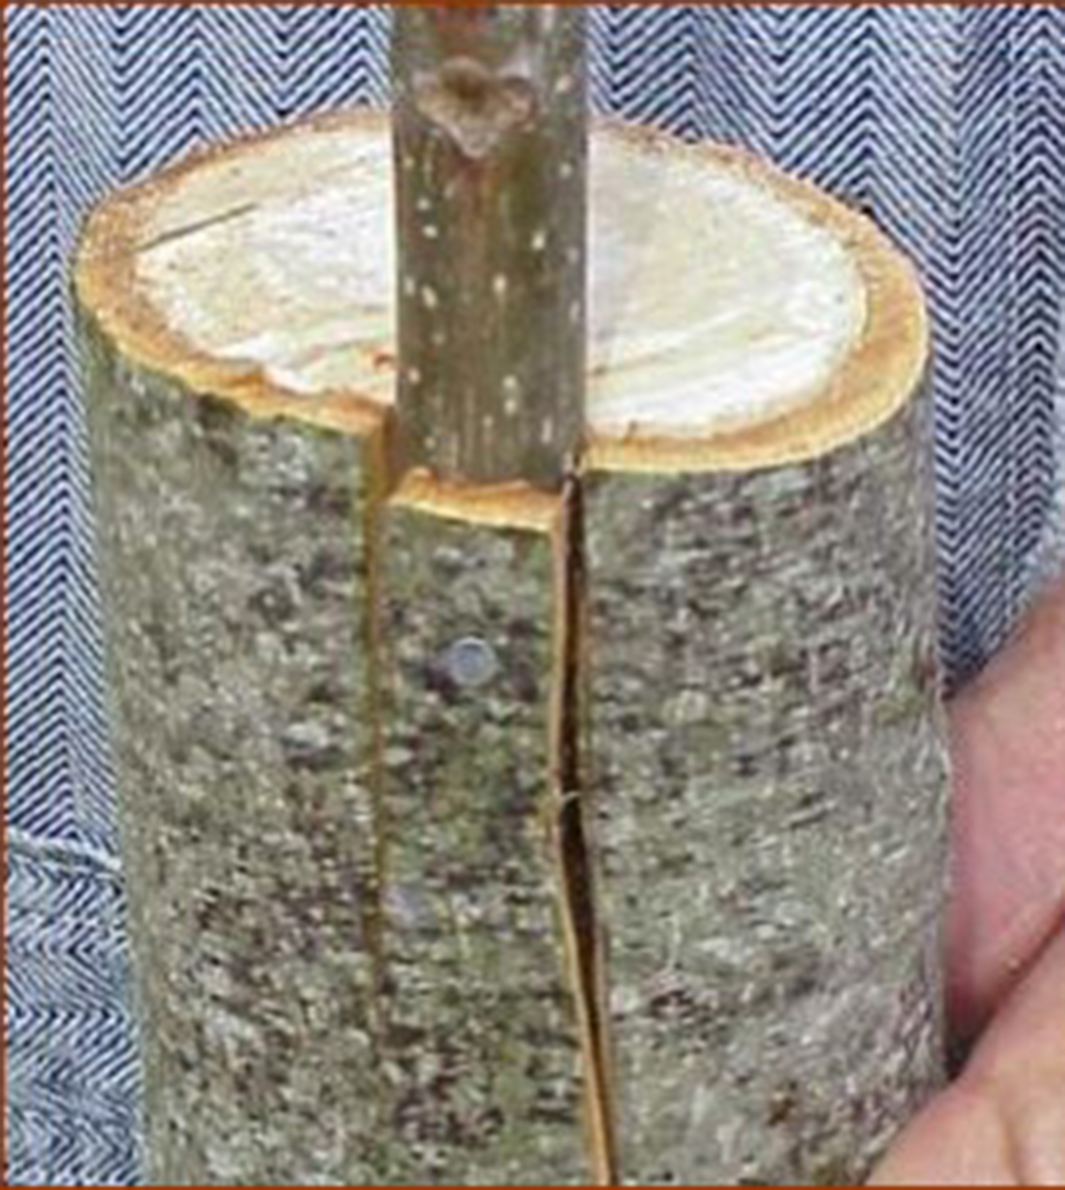 A finished bark graft shows the new scion branch secured by a small nail in the cut made in the larger branch.